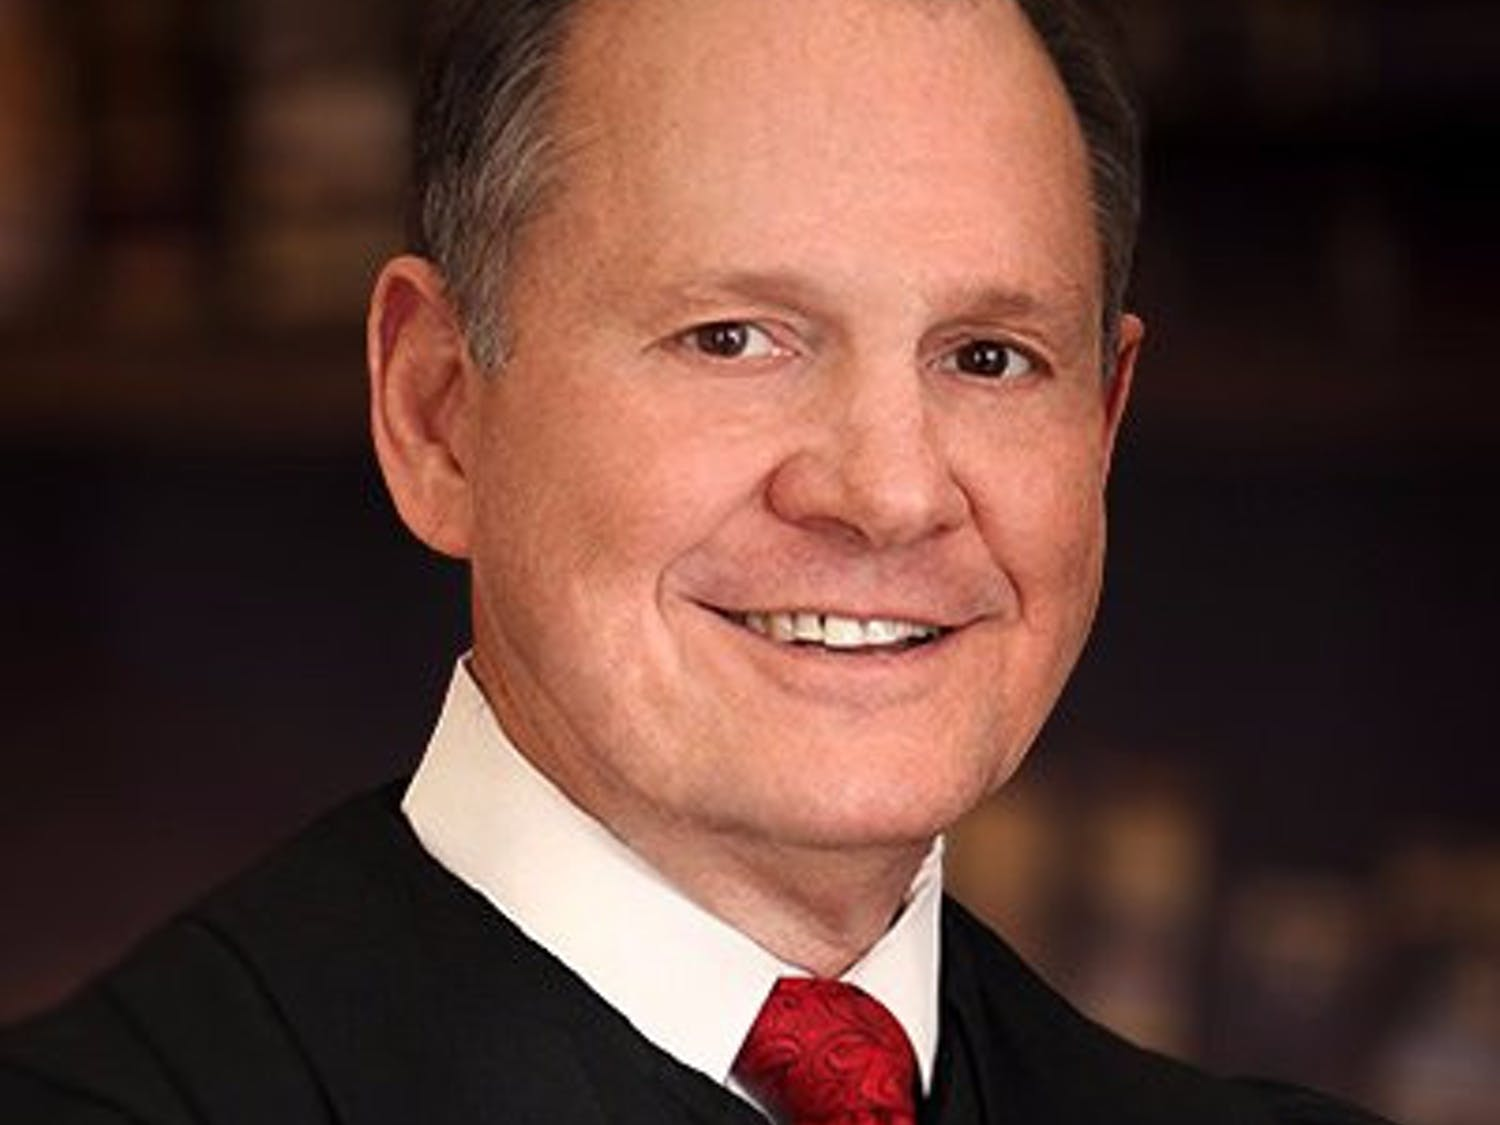 Roy-Moore-from-twitter-@MooreSenate